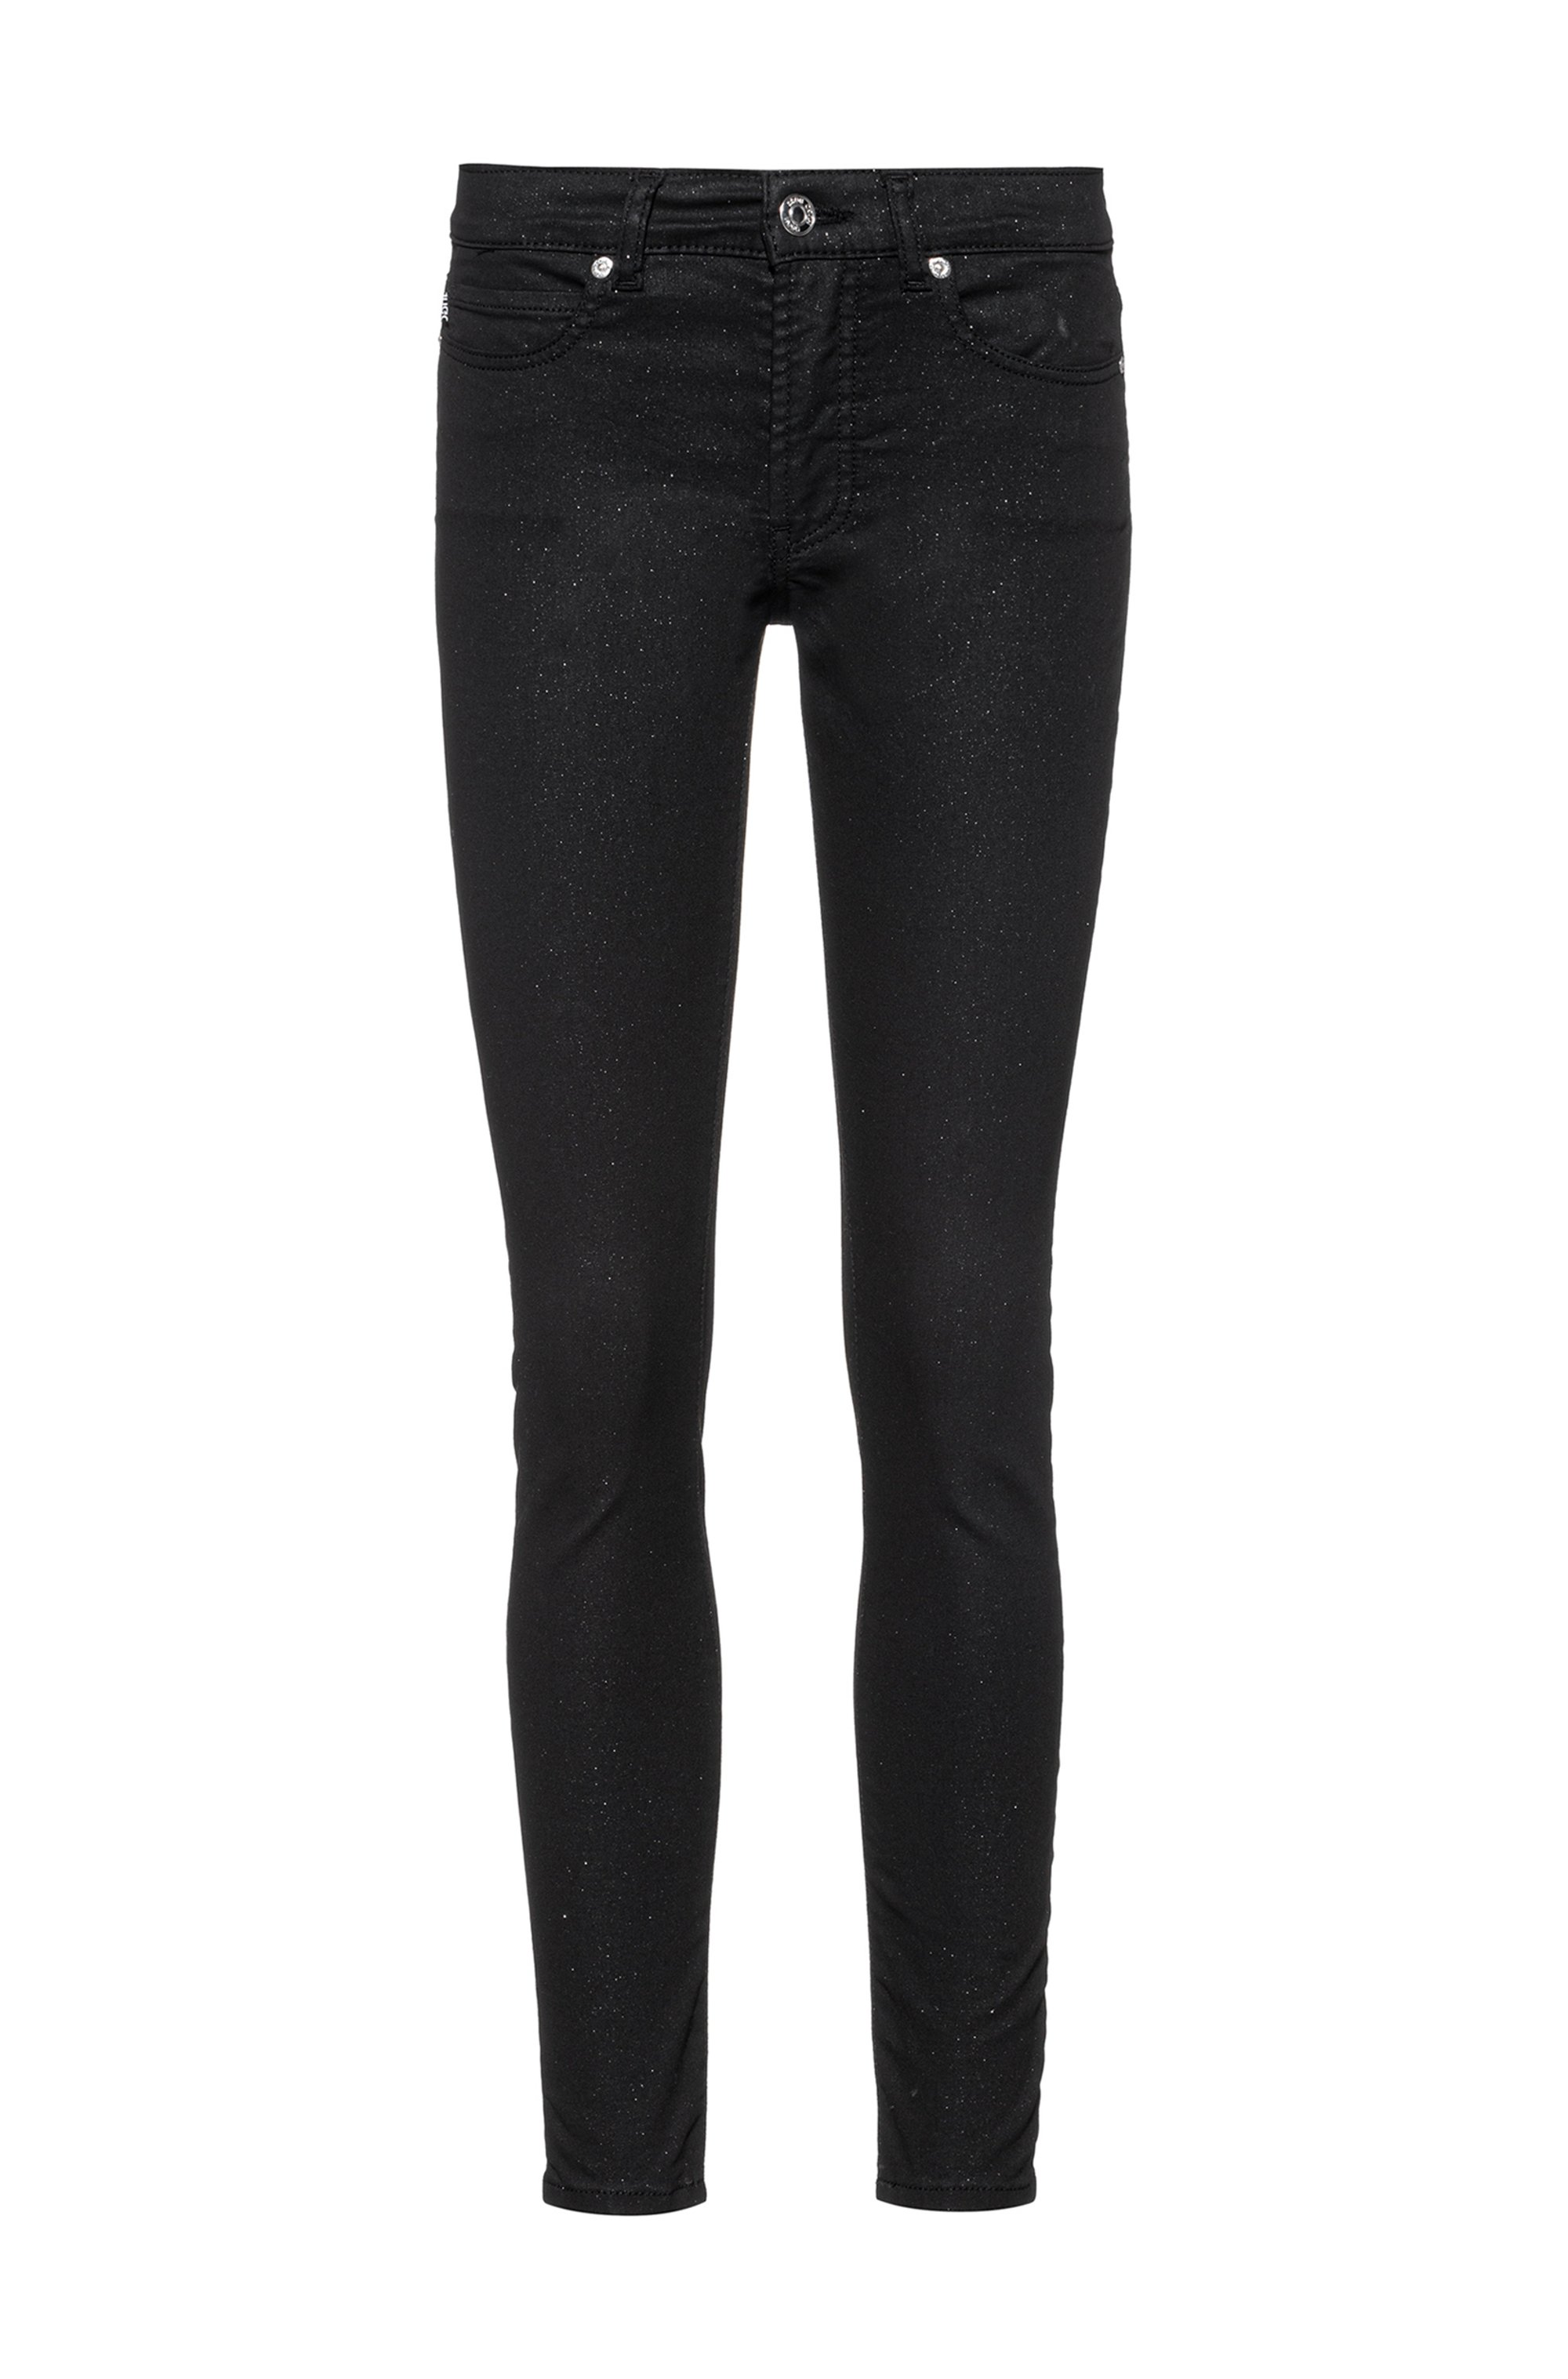 CHARLIE skinny-fit jeans in glitter-effect black stretch denim, Black